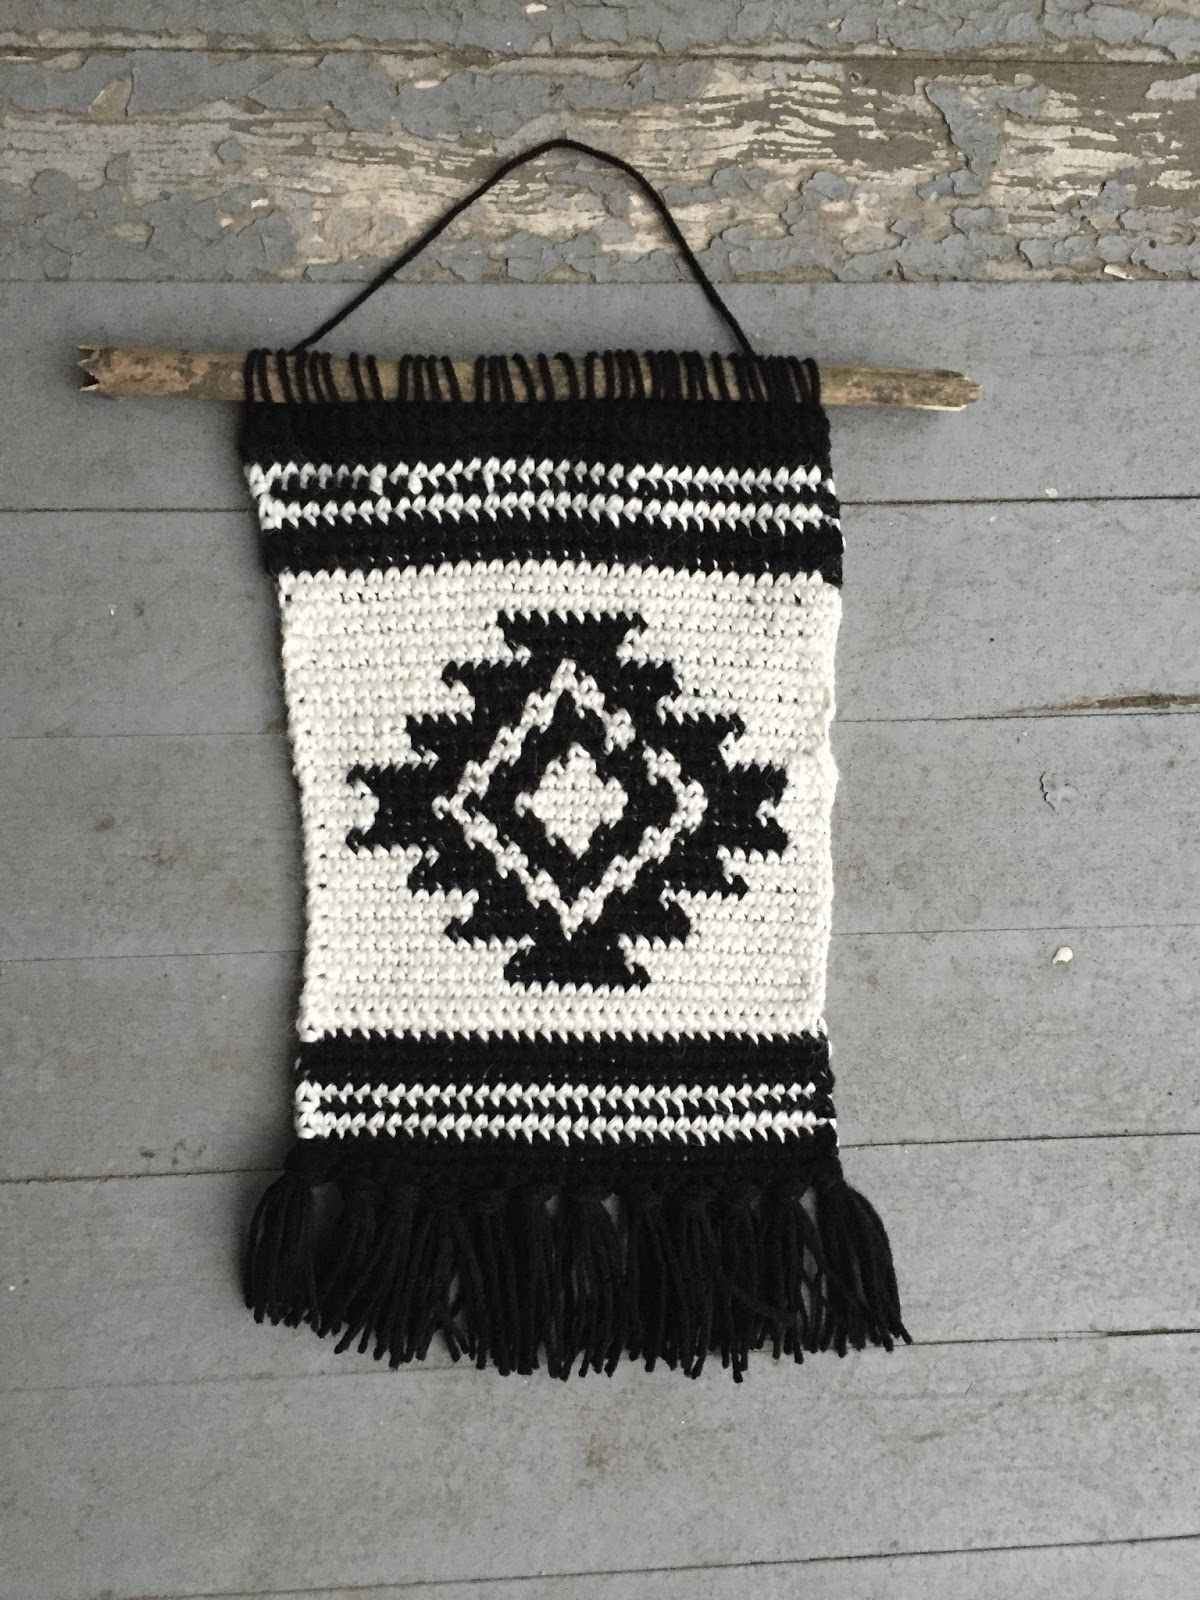 Crochet Wall Art Regarding Well Known Shirley And Eadie: Crochet Wall Hanging Tutorial (View 11 of 15)